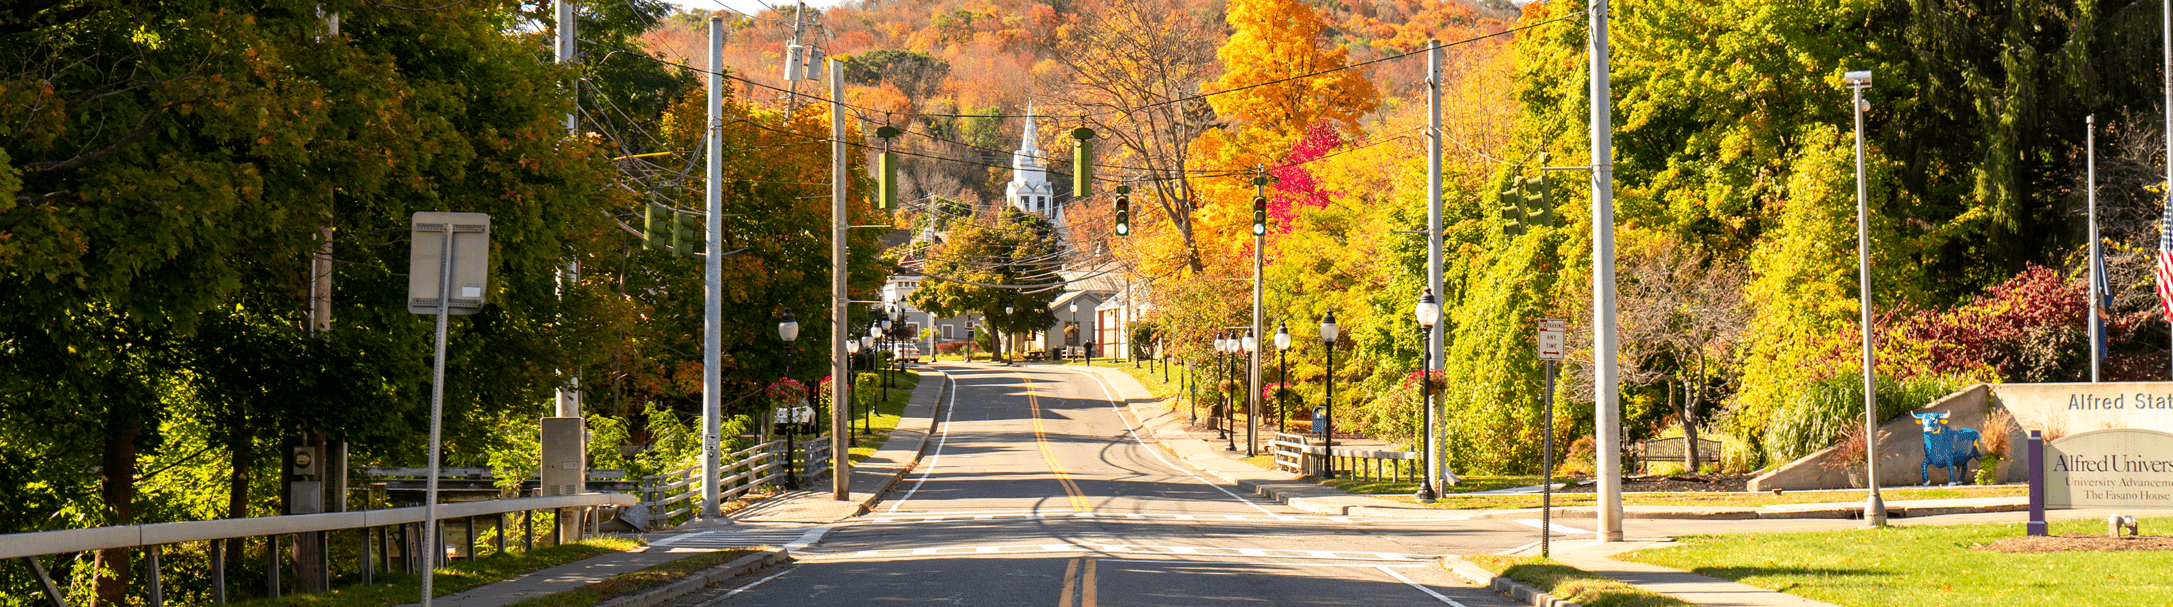 street with autumn leaves